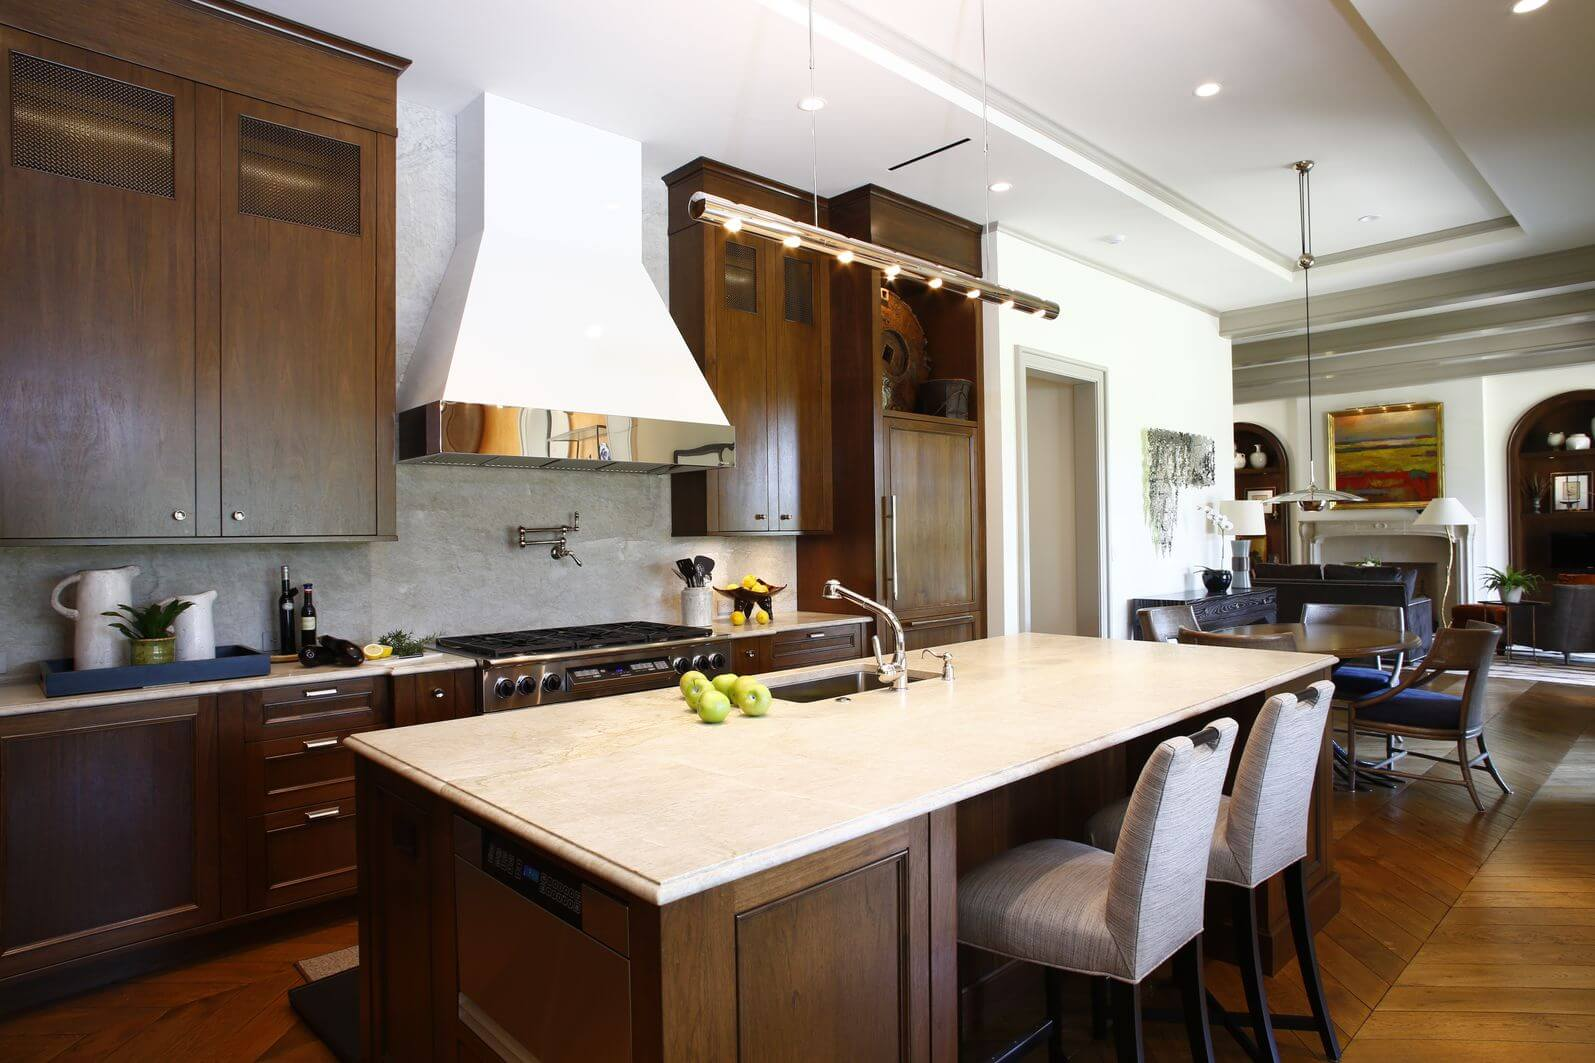 White Kitchens With Dark Wood Floors 40 Inviting Contemporary Custom Kitchen Designs Layouts